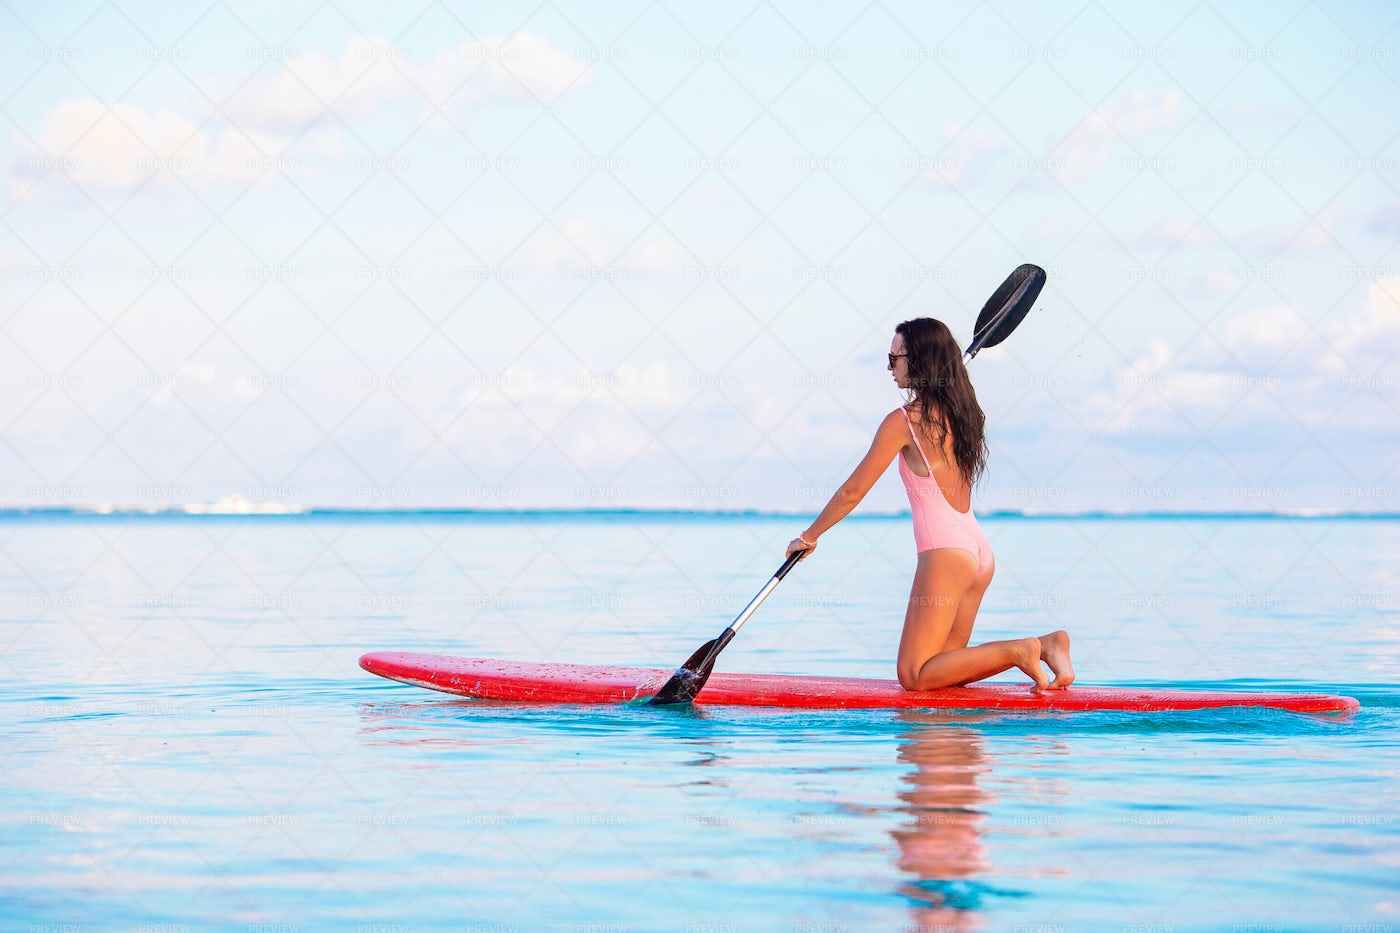 Active Woman On A Paddle: Stock Photos